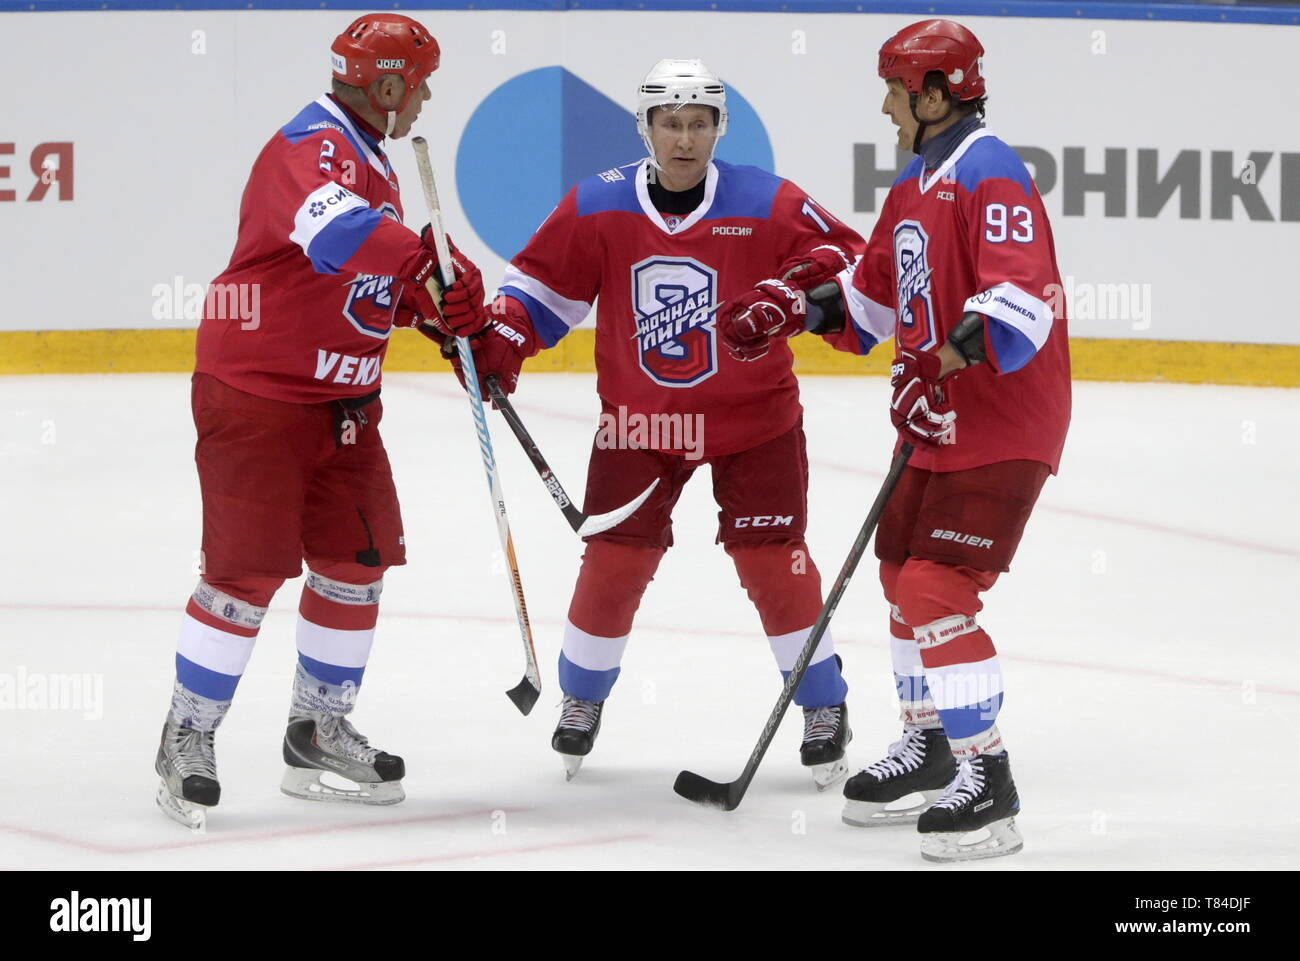 Sochi, Russia. 10th May, 2019. SOCHI, RUSSIA - MAY 10, 2019: Russian State Duma member Vyacheslav Fetisov, Russia's President Vladimir Putin, and Tula Region Governor Alexei Dyumin (L-R) in a Night Hockey League gala match at the Bolshoi Ice Palace. Mikhail Metzel/TASS Credit: ITAR-TASS News Agency/Alamy Live News - Stock Image